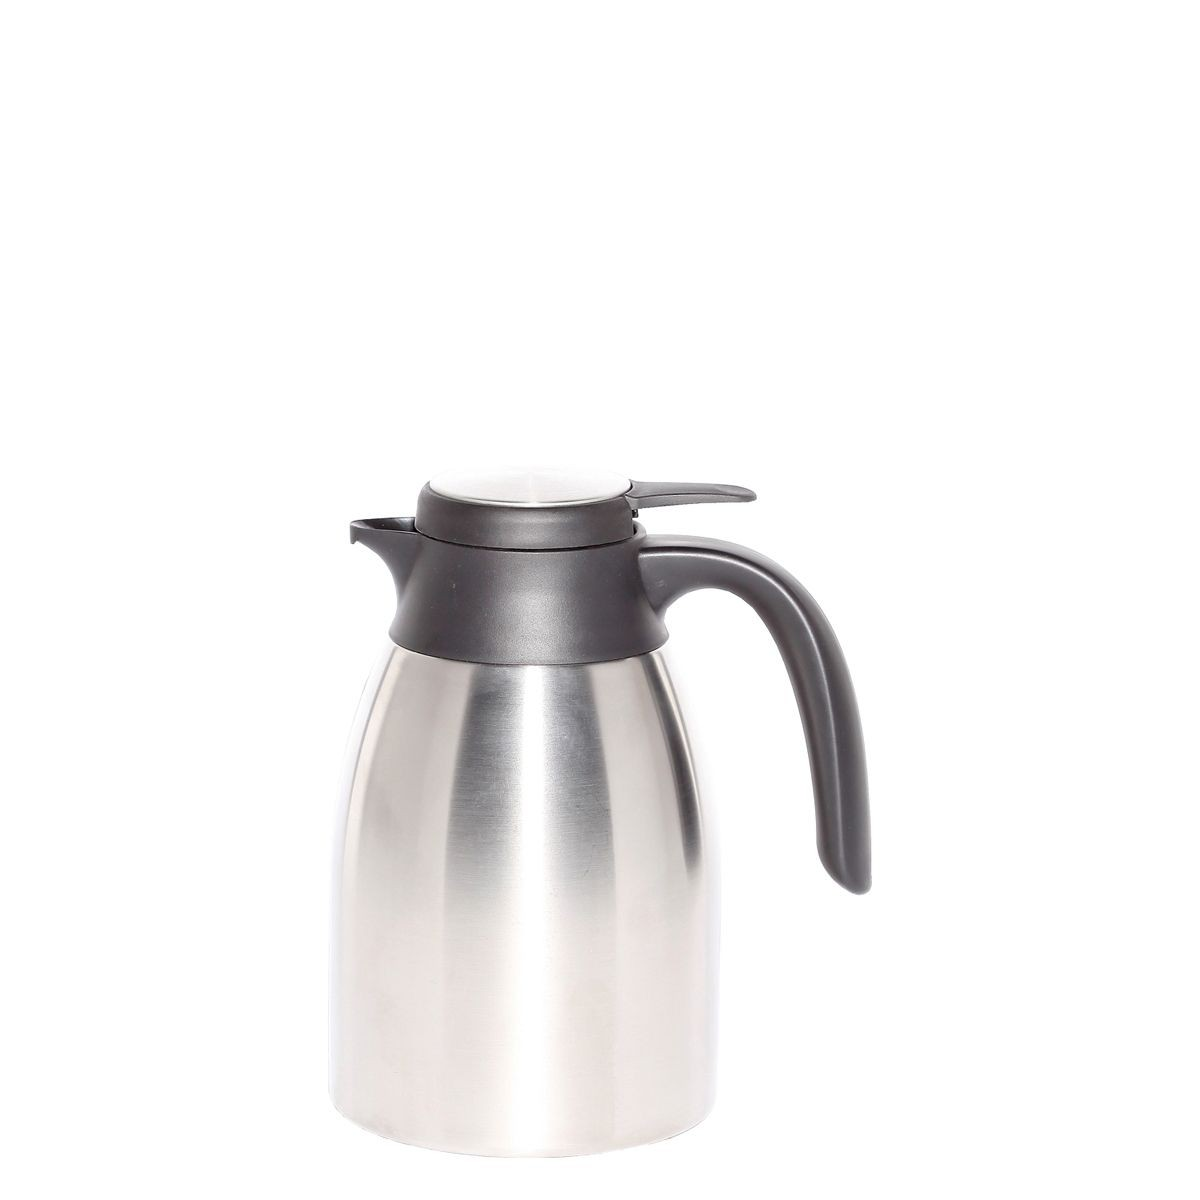 Service Ideas FCC12SS Stainless Steel Creamer, 1.2 Liter